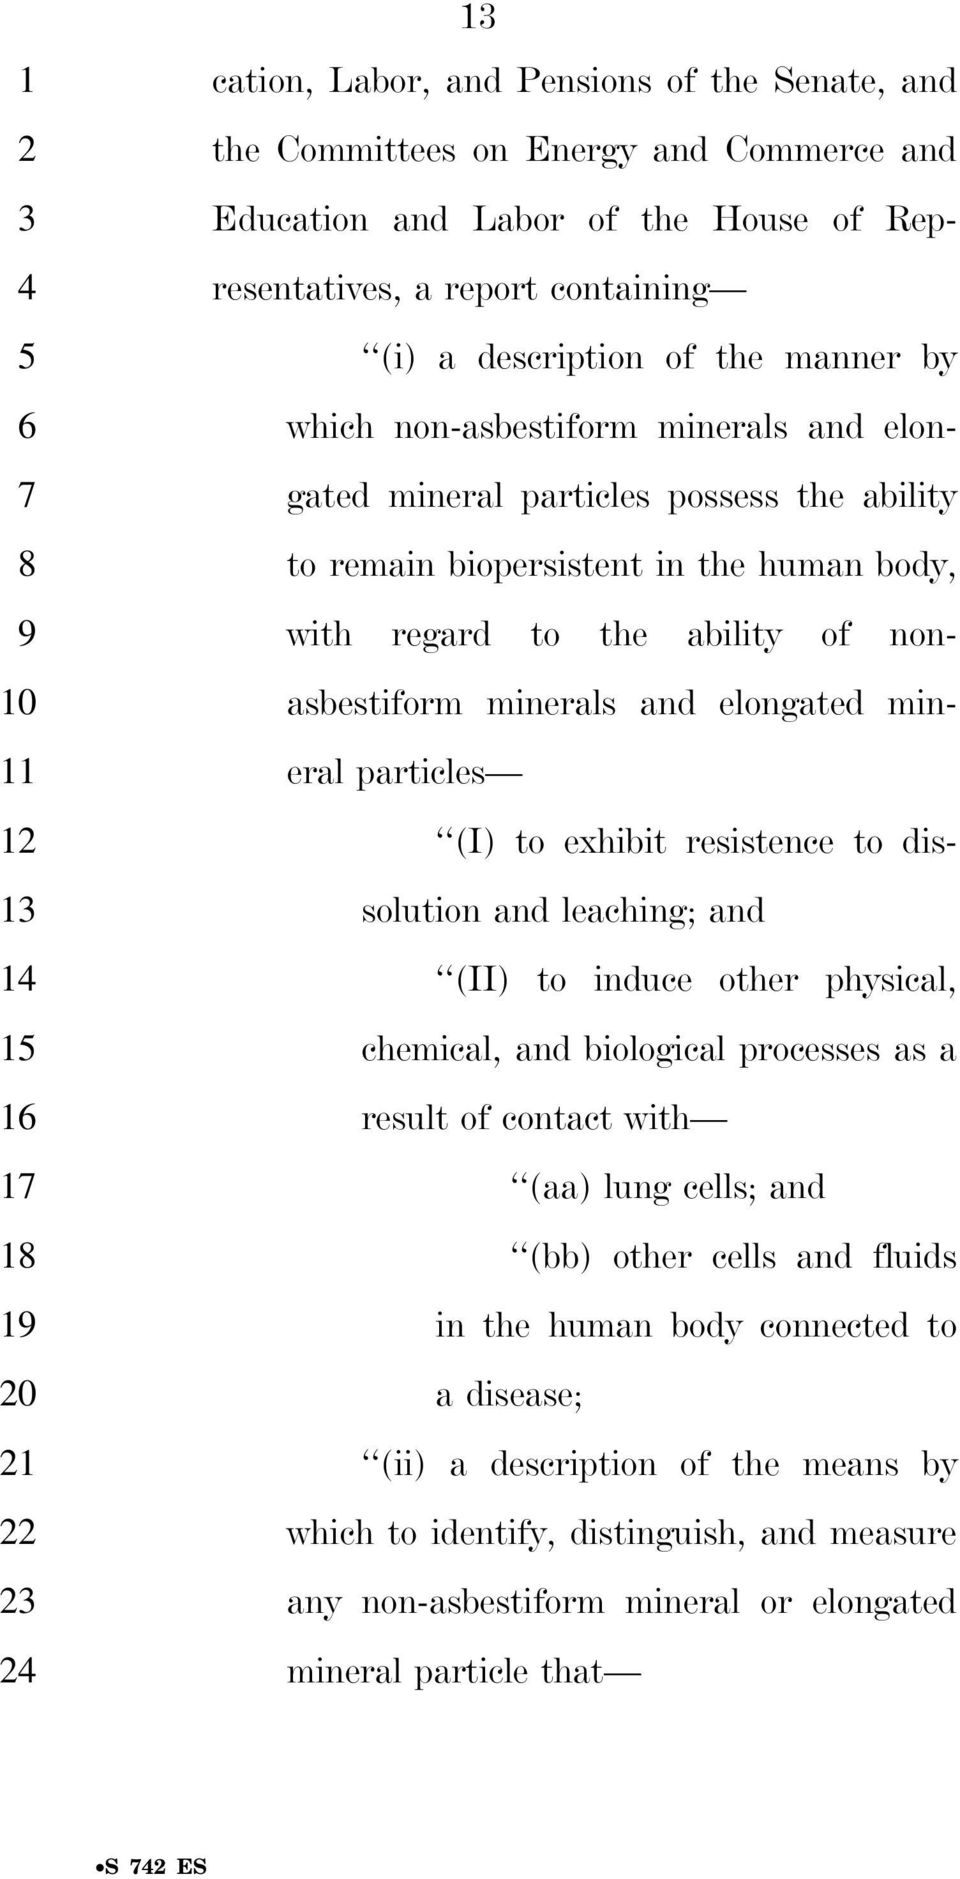 and elongated mineral particles (I) to exhibit resistence to dissolution and leaching; and (II) to induce other physical, chemical, and biological processes as a result of contact with (aa) lung